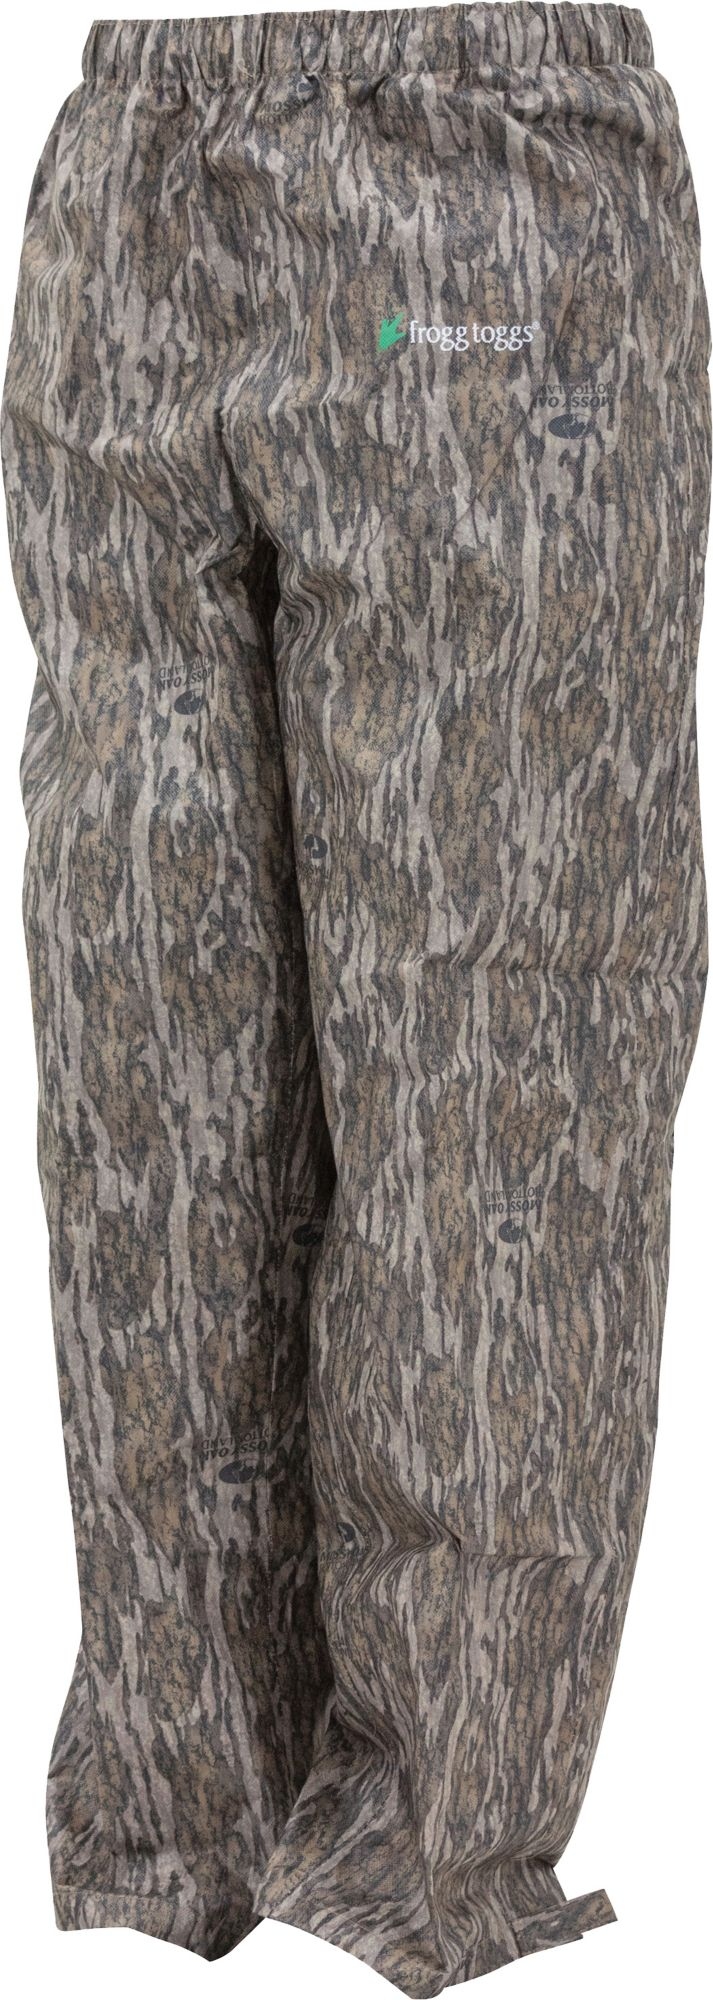 frogg toggs Men's Classic Pro Action Pants, Size: 3XL, Mossy Oak Bottomland thumbnail